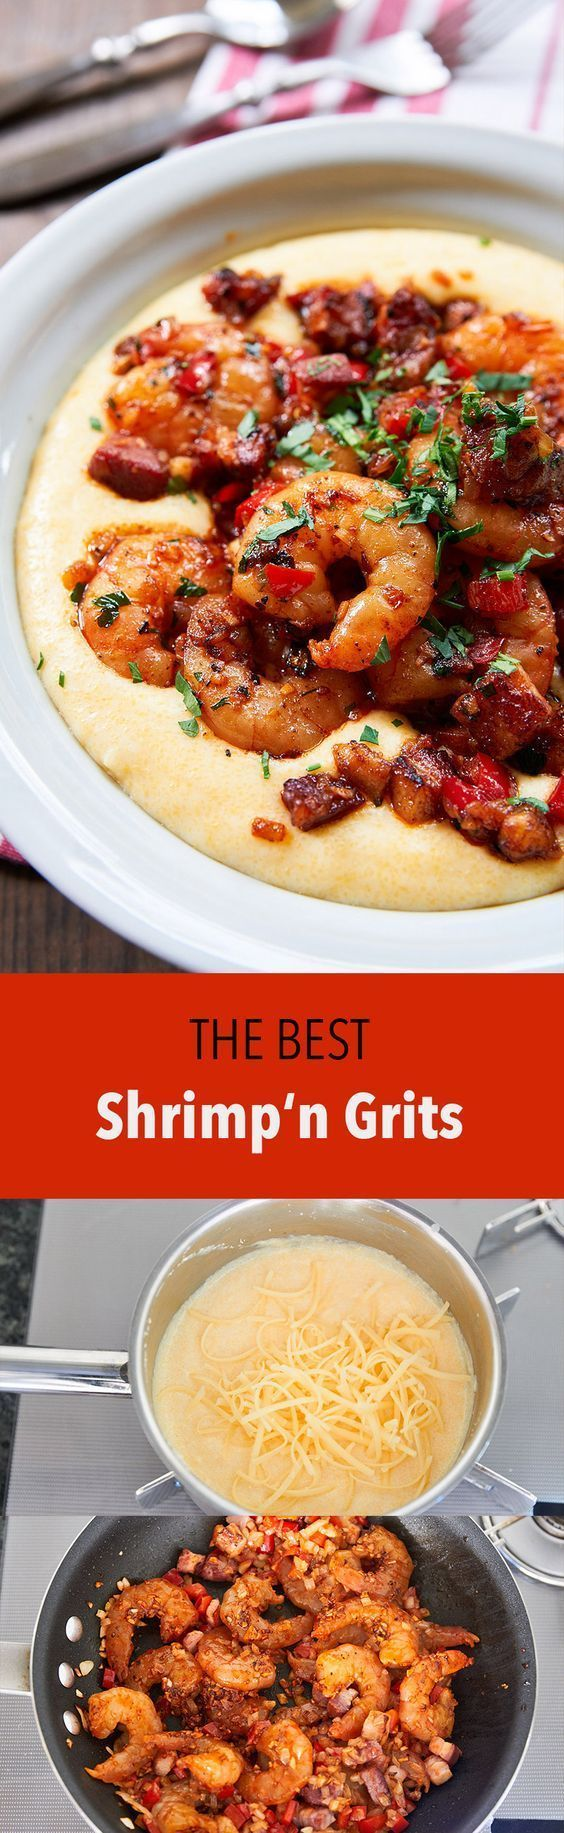 "Like any structure, constructing a great Shrimp and Grits requires a robust foundation. Cooking the grits in water makes them taste… well… watery. Cooking them in milk makes them rich and creamy, but they still taste pretty bland. To really take my grits over-the-top, I like to cook them in a 50:50 blend of chicken … Continue reading ""Shrimp and Grits"" * For more information, visit image link."